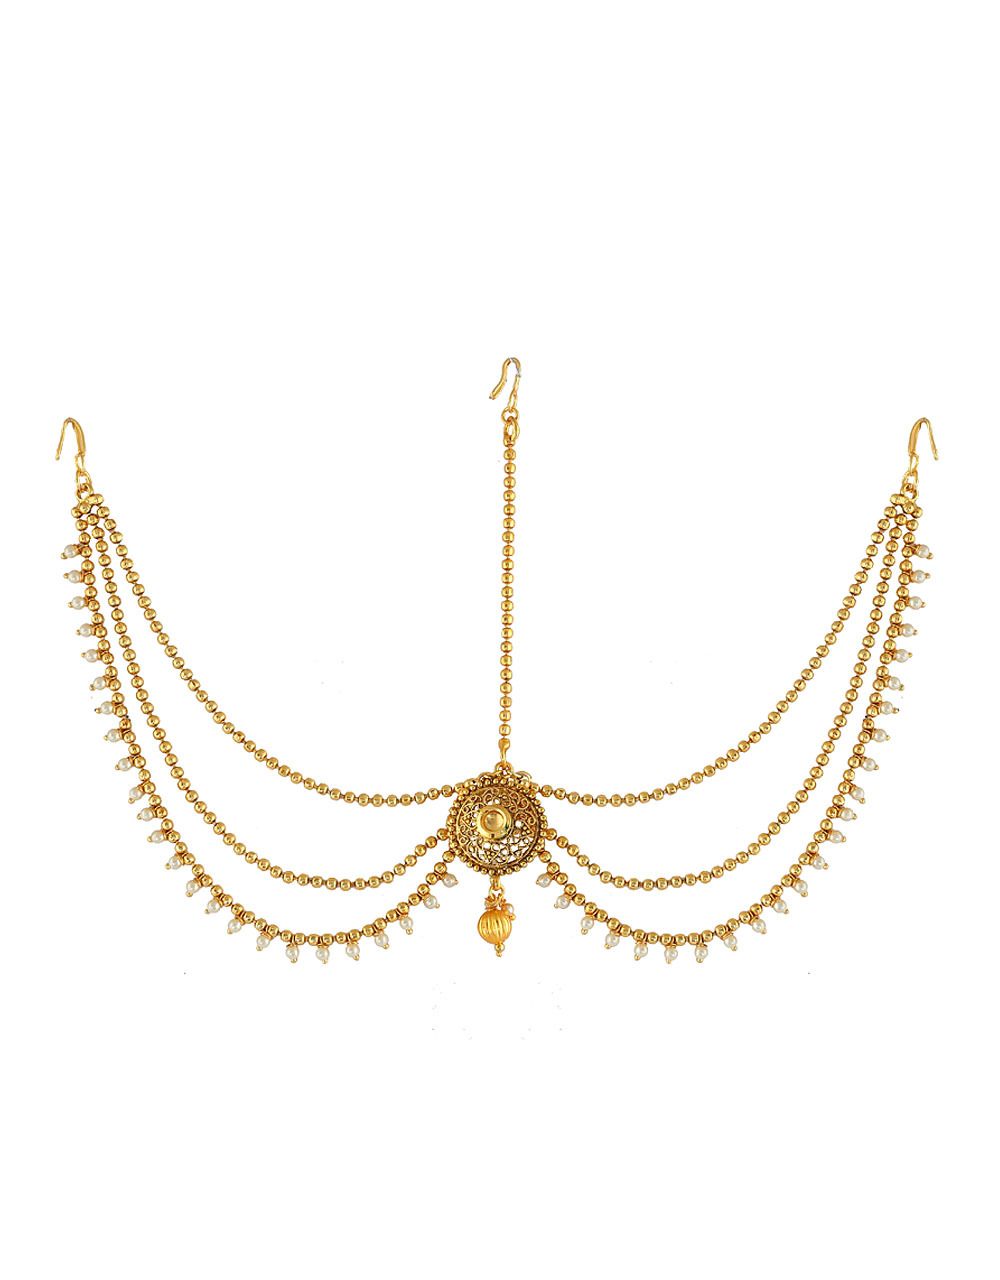 Antique Gold Finish Hair Accessories